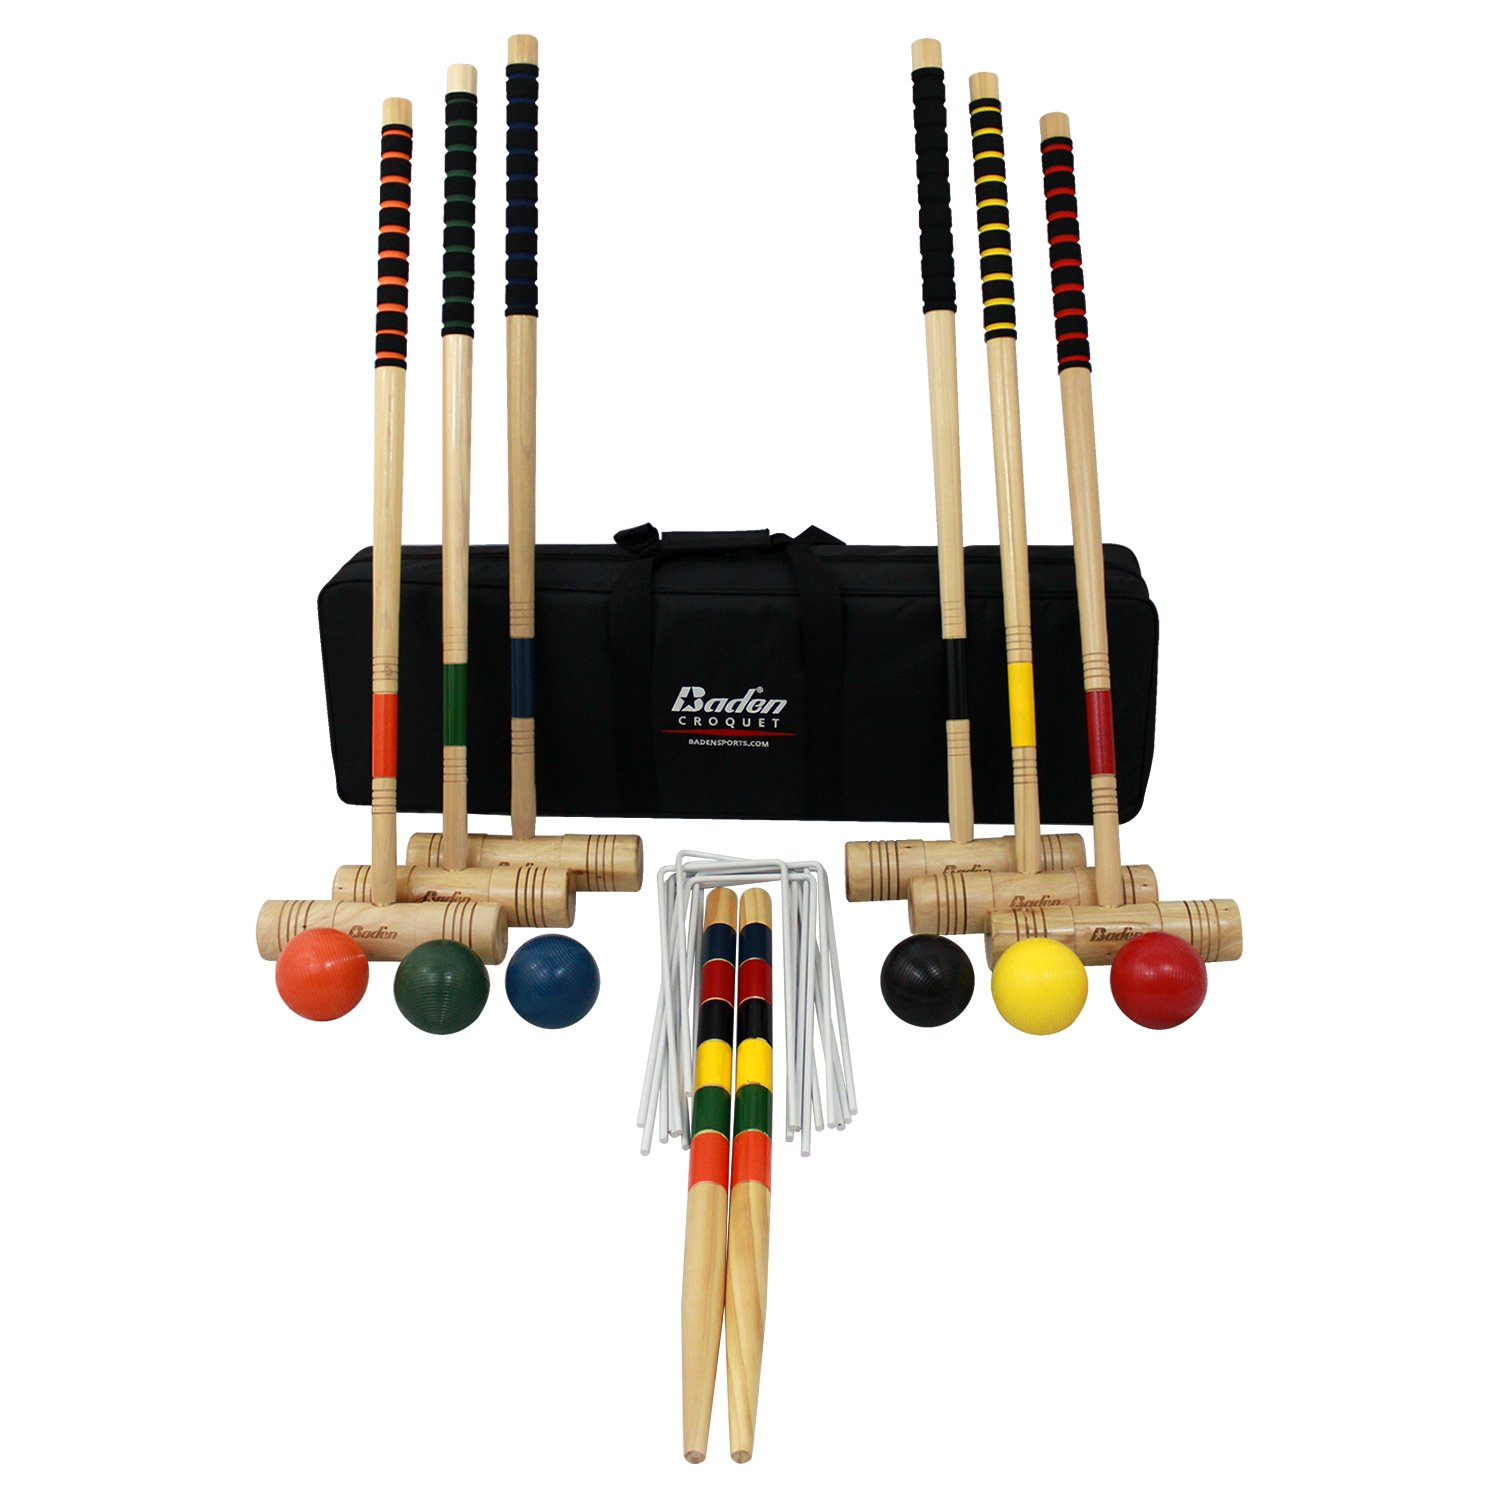 Baden 6-player Champions Croquet Set with Soft Grip Handles by Baden